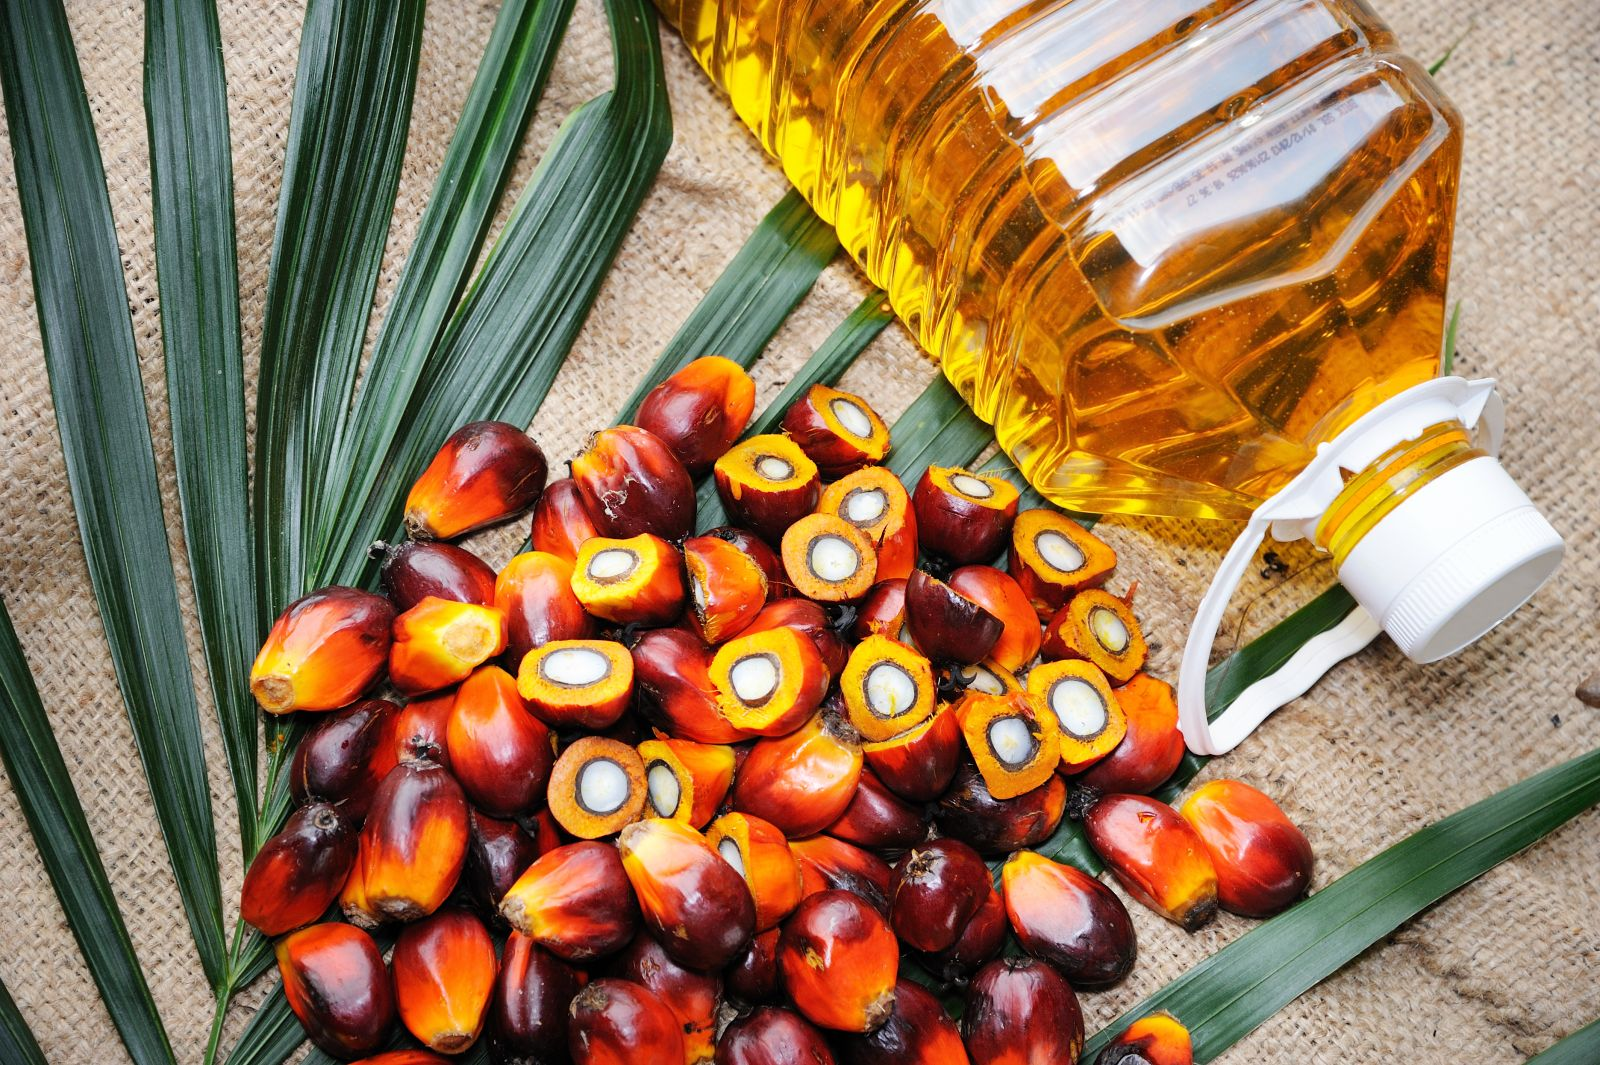 Palm Oil Versus Palm Kernel Oil: Which Is Better?